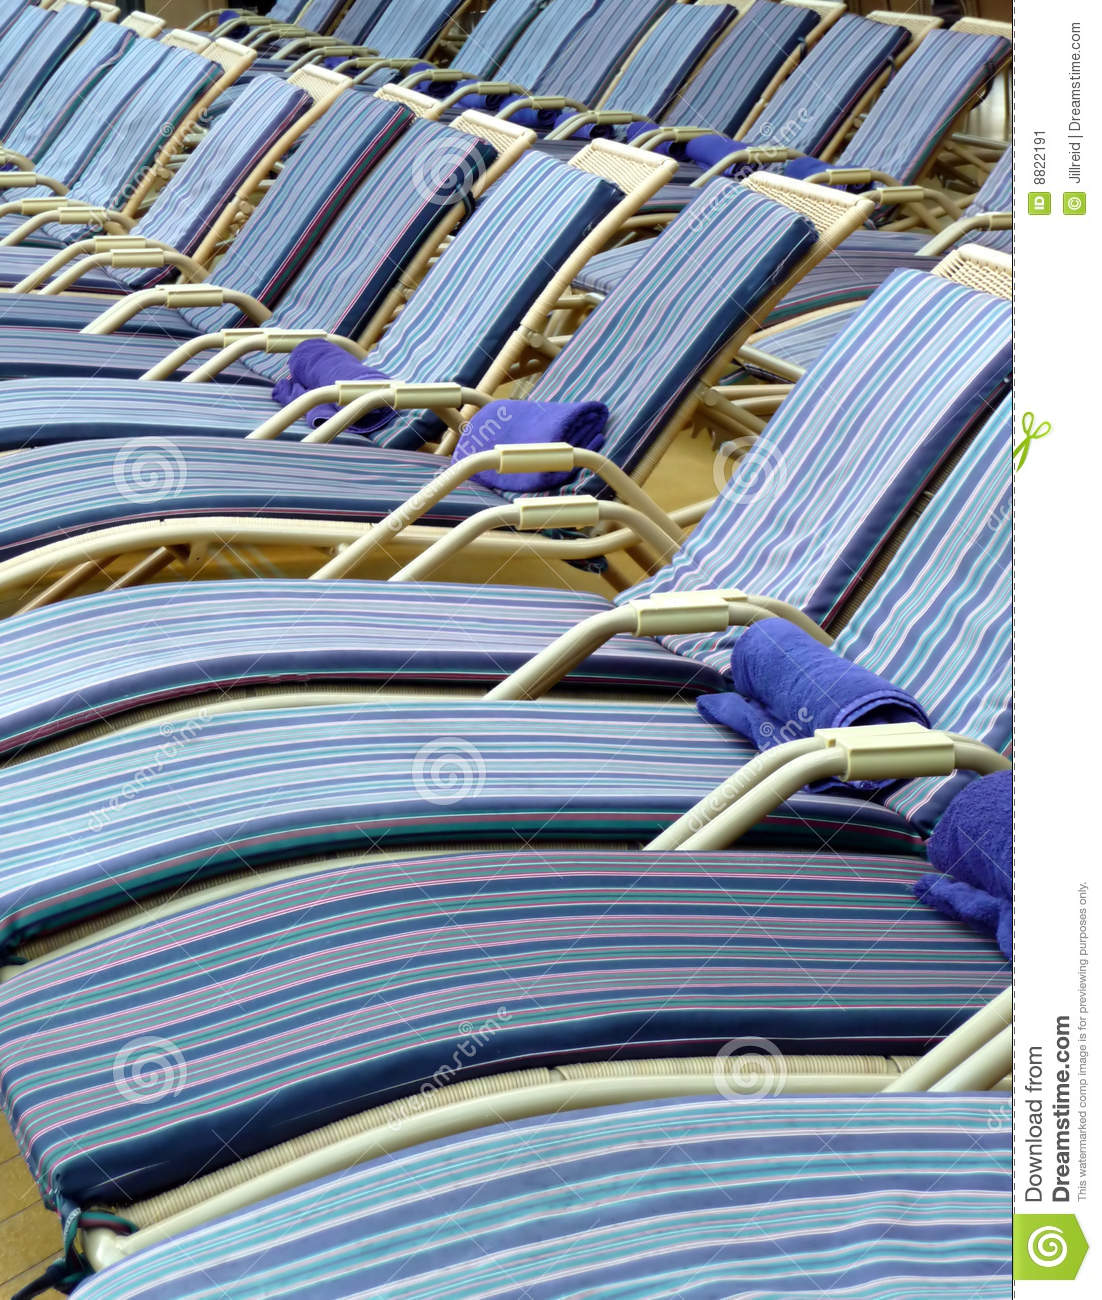 Pool Deck Chairs On A Cruise Ship Stock Image Image Of Boat Enjoy